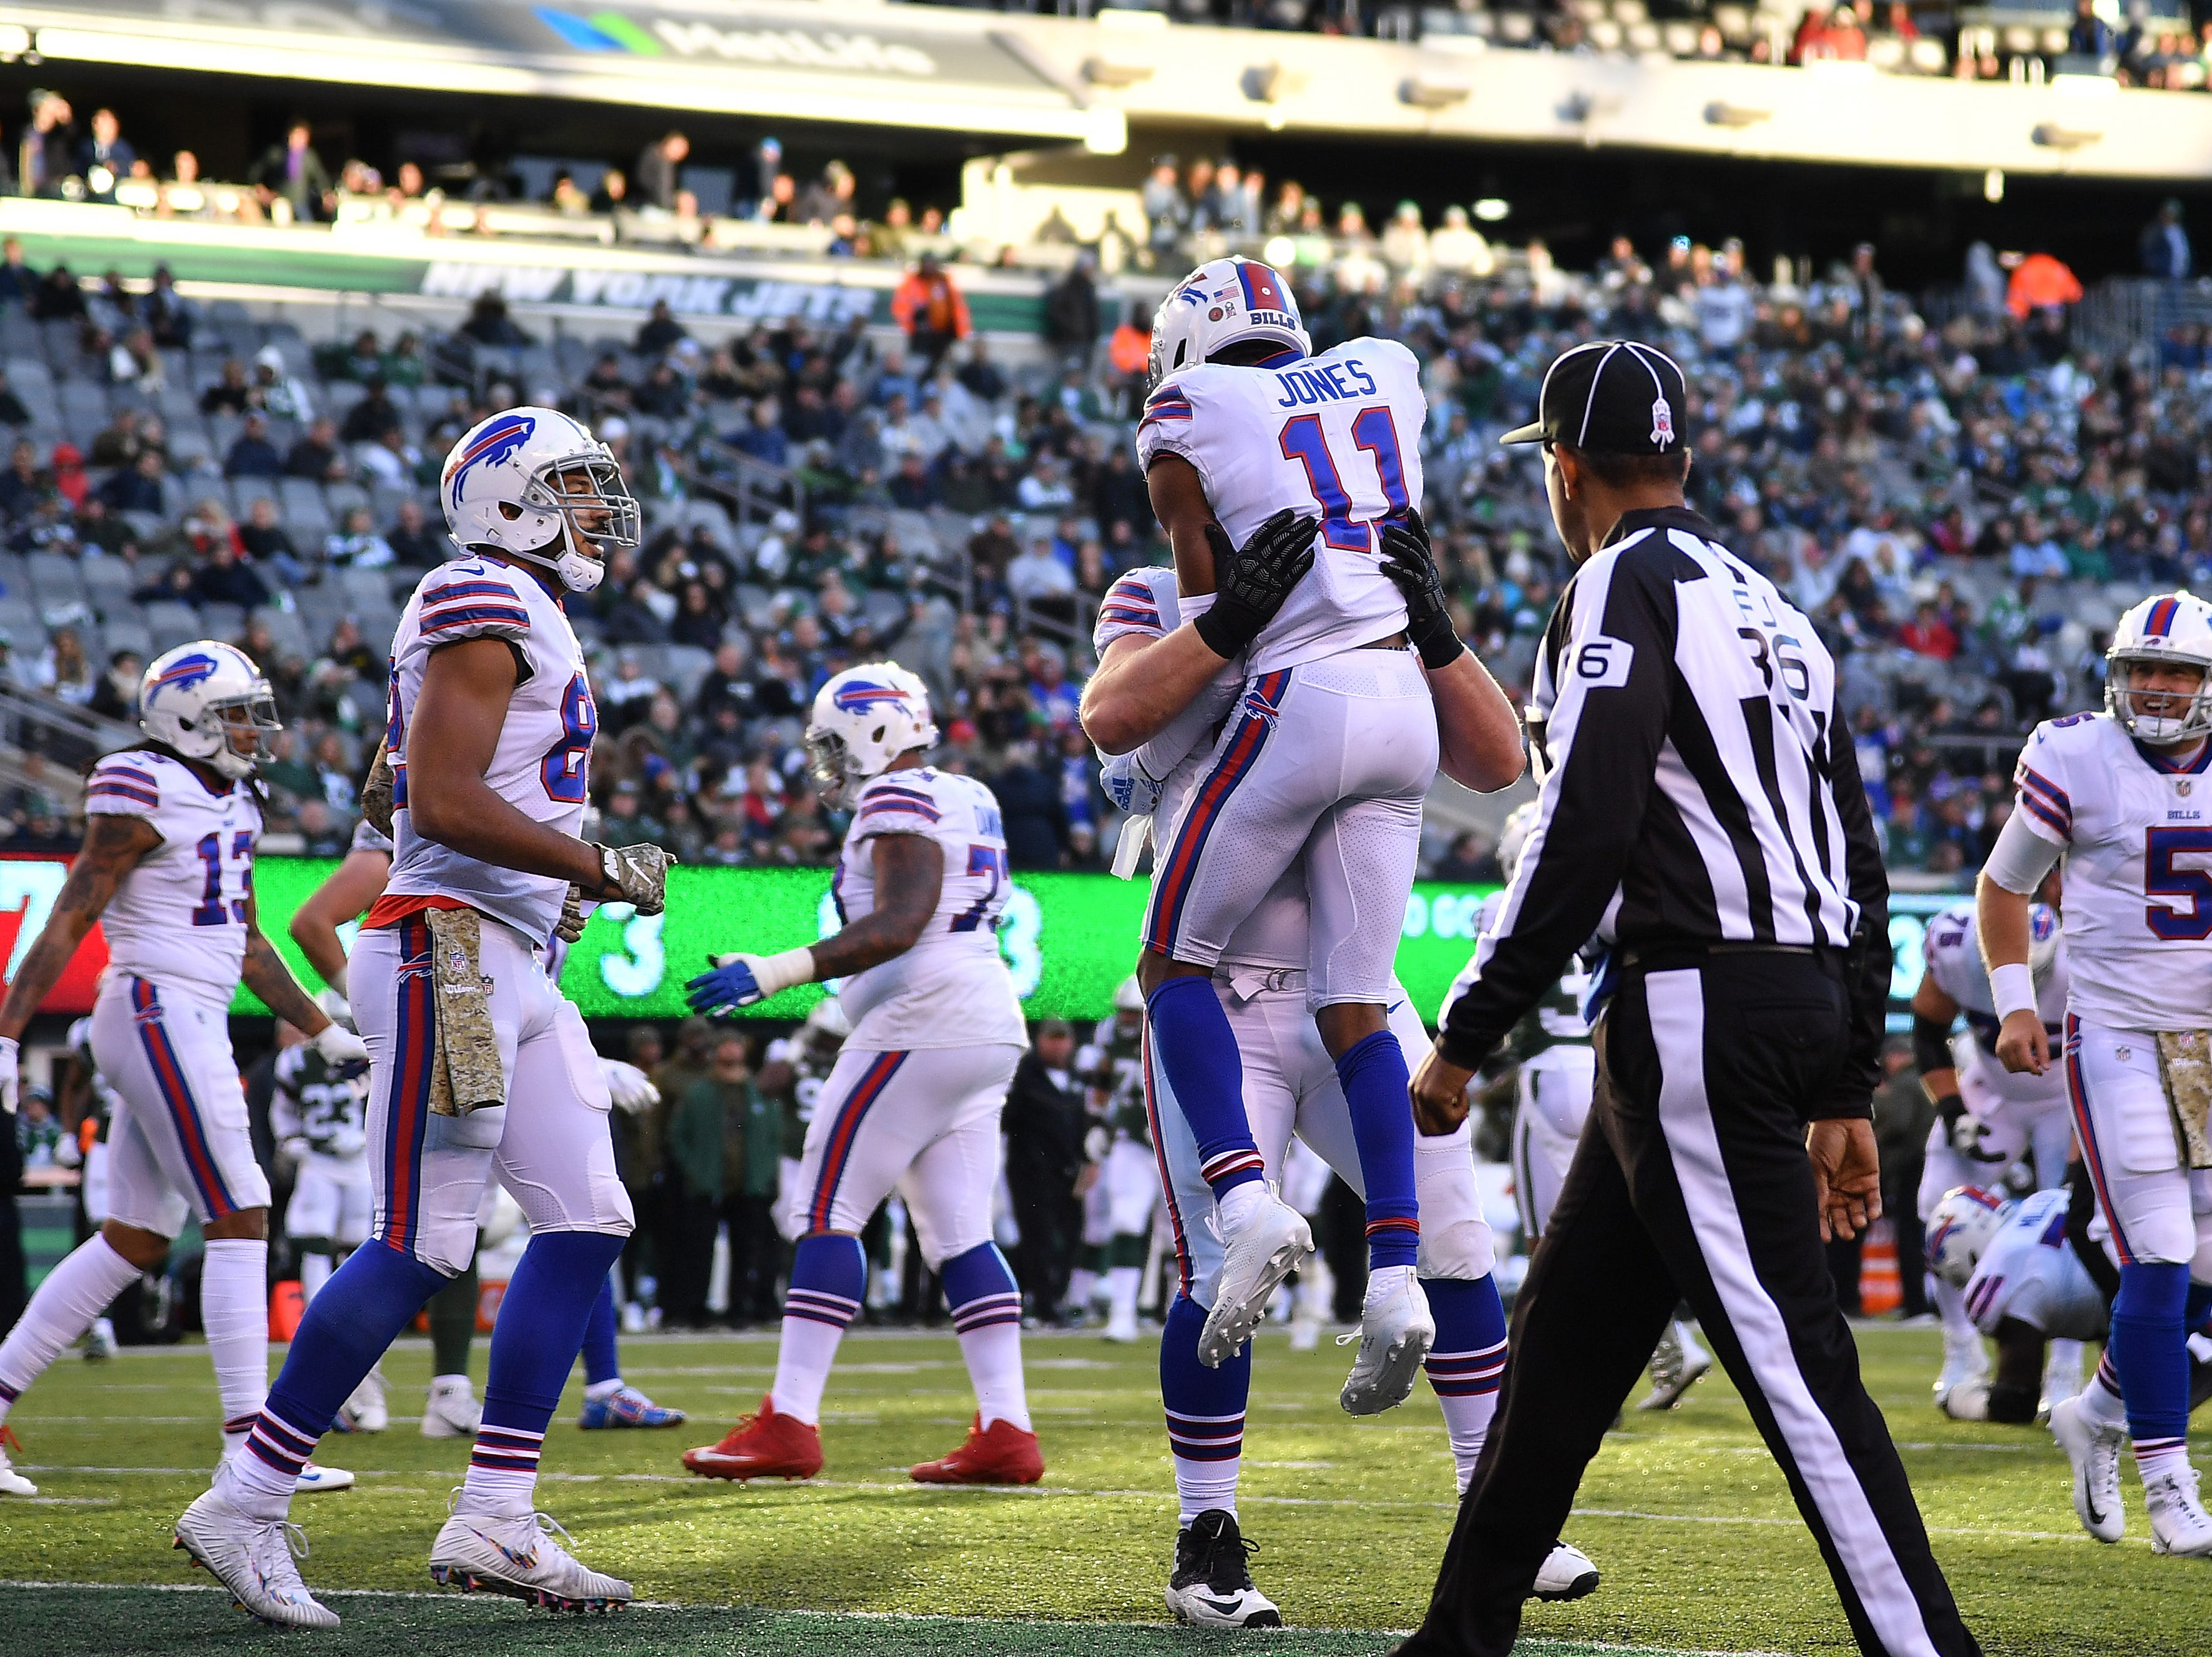 EAST RUTHERFORD, NEW JERSEY - NOVEMBER 11: Zay Jones #11 of the Buffalo Bills is congratulated by his teammates after his third quarter touchdown against the New York Jets at MetLife Stadium on November 11, 2018 in East Rutherford, New Jersey. (Photo by Mark Brown/Getty Images)